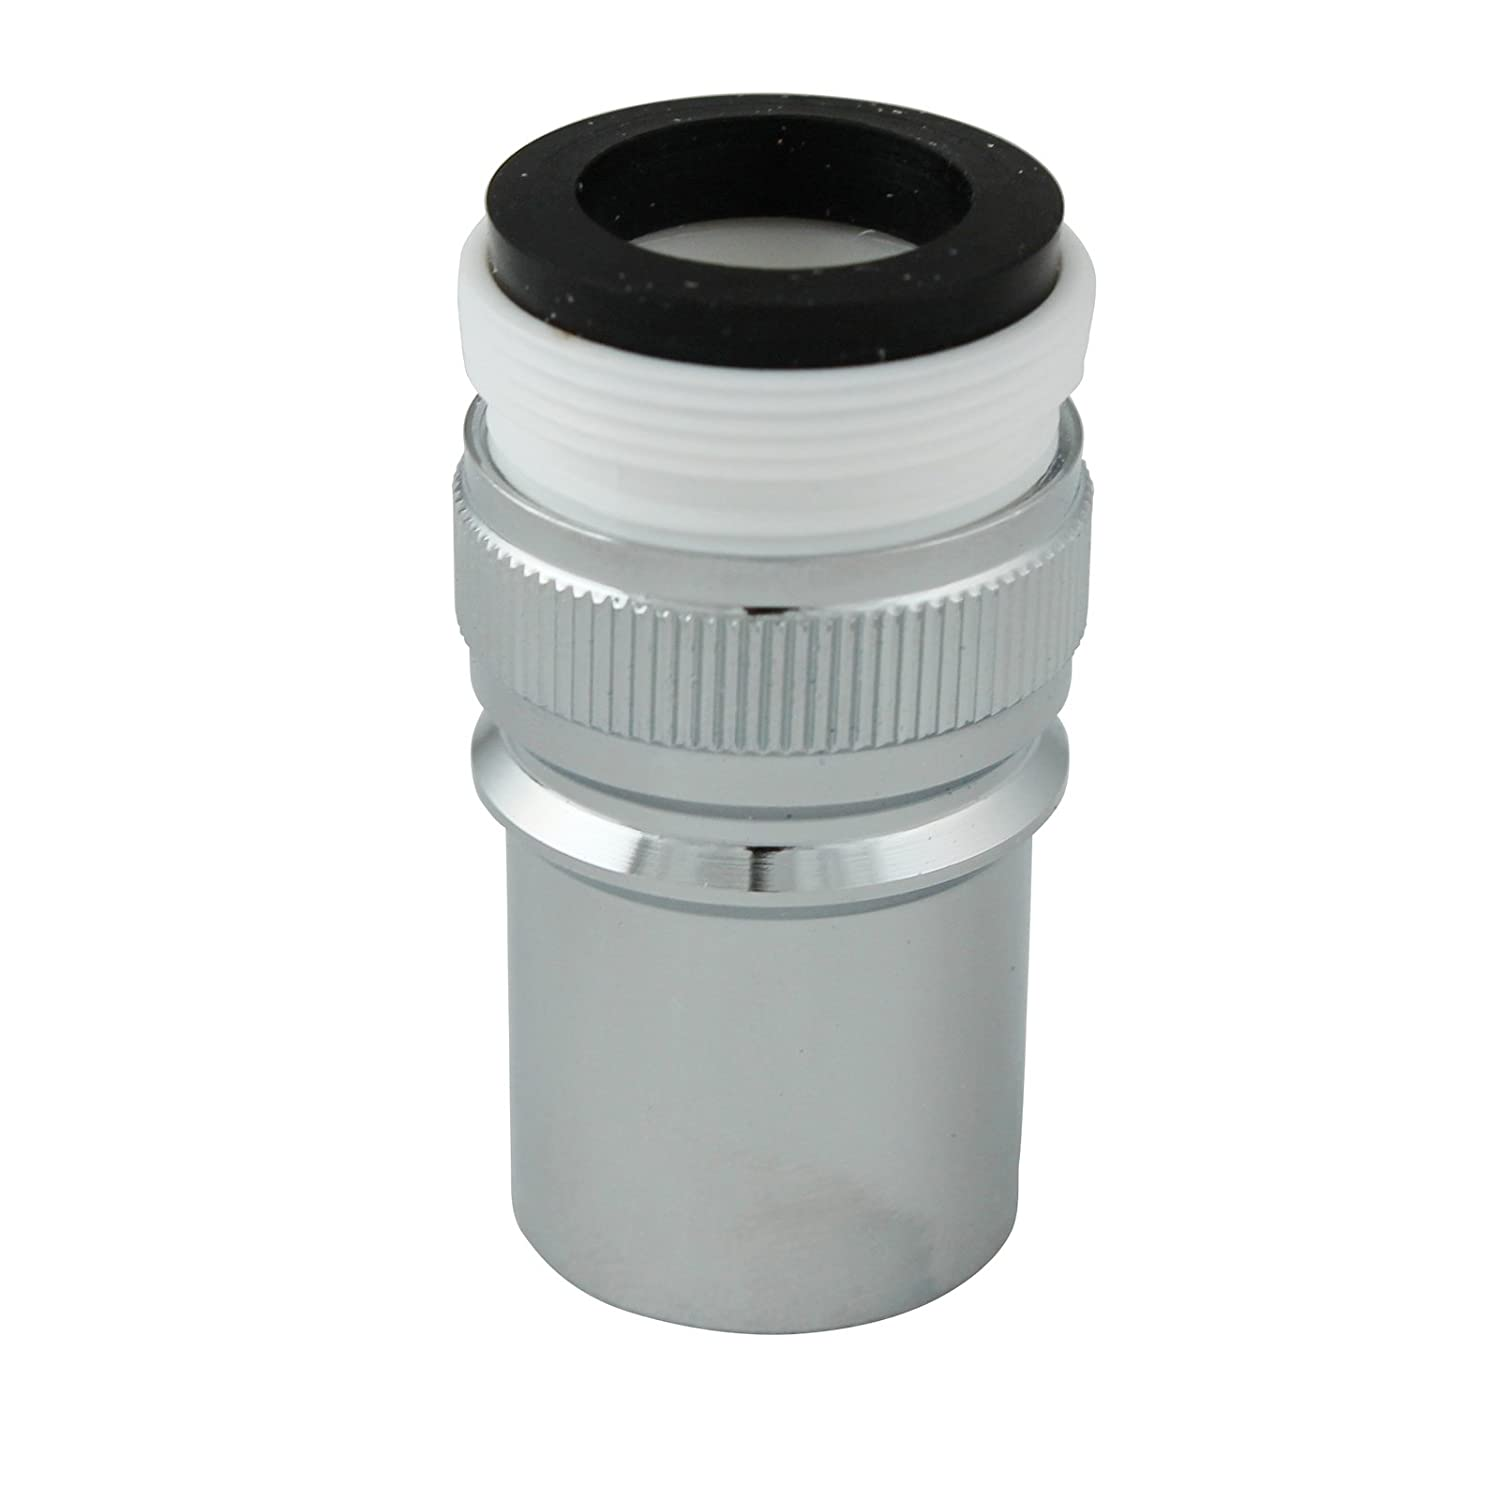 Plumb Pak PP800-11LF Faucet Aerator For Large Diameter Dishwasher, Lead Free,